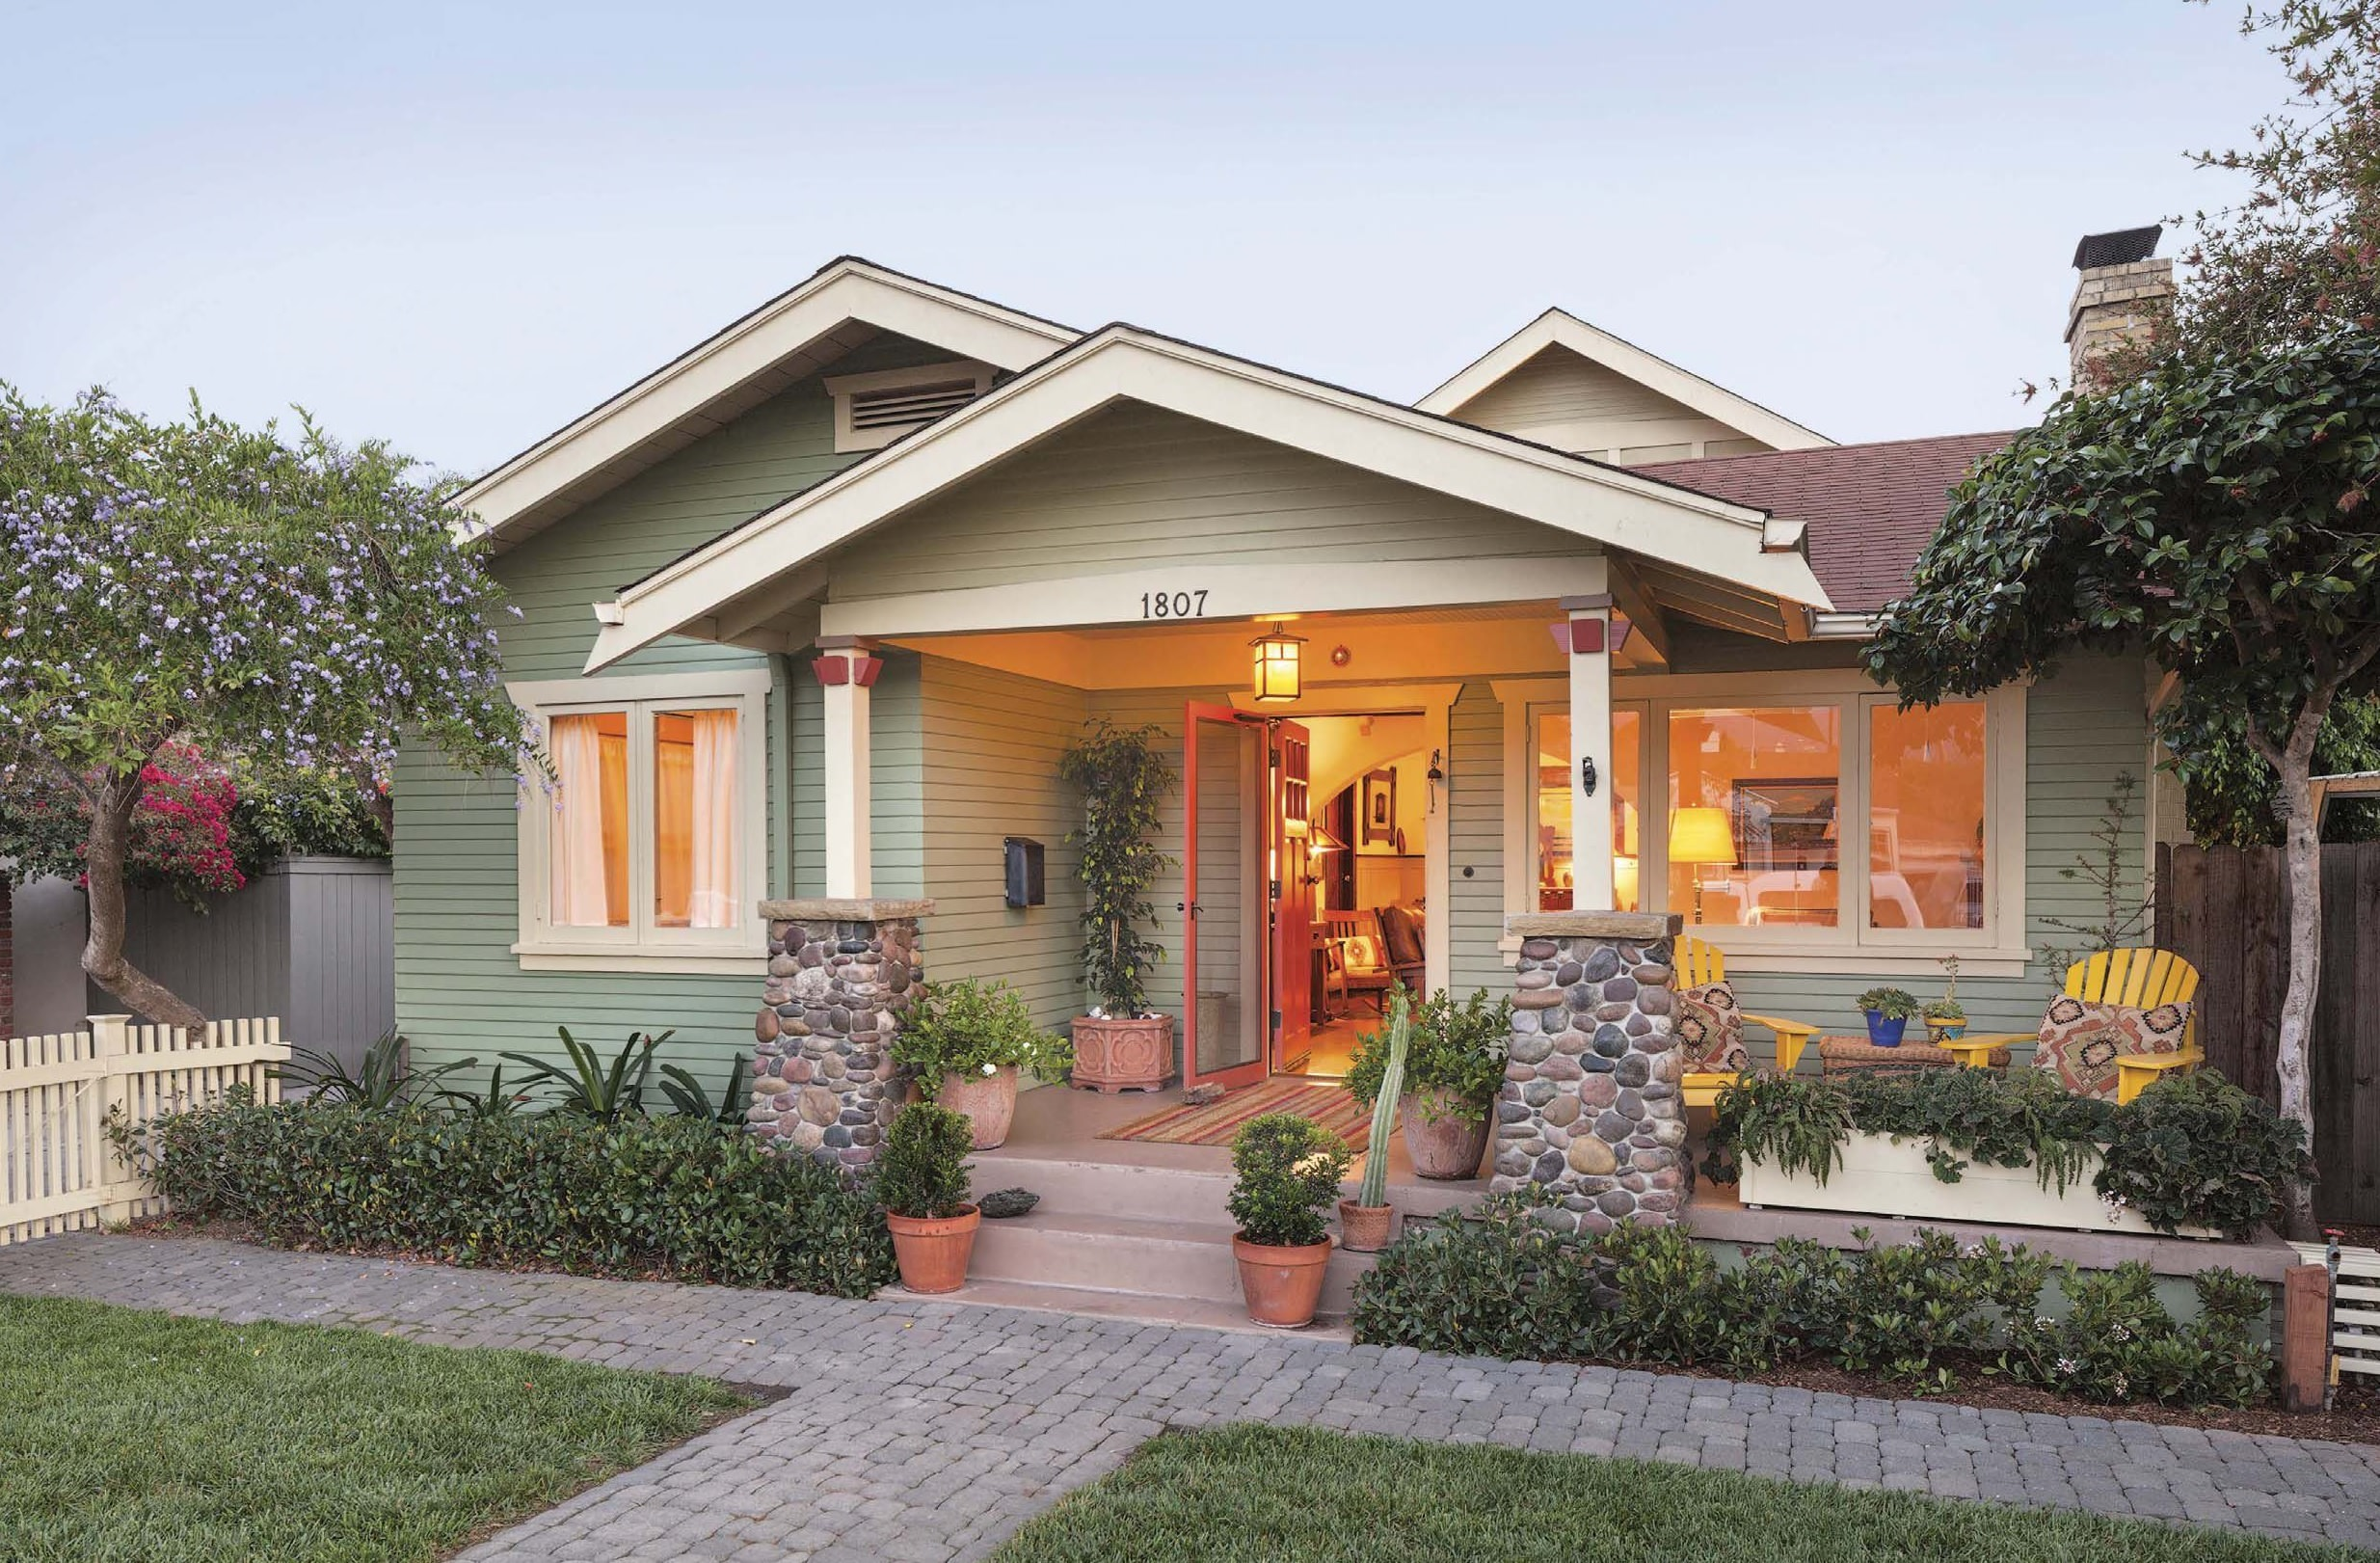 Simple living in santa barbara for Simple living homes